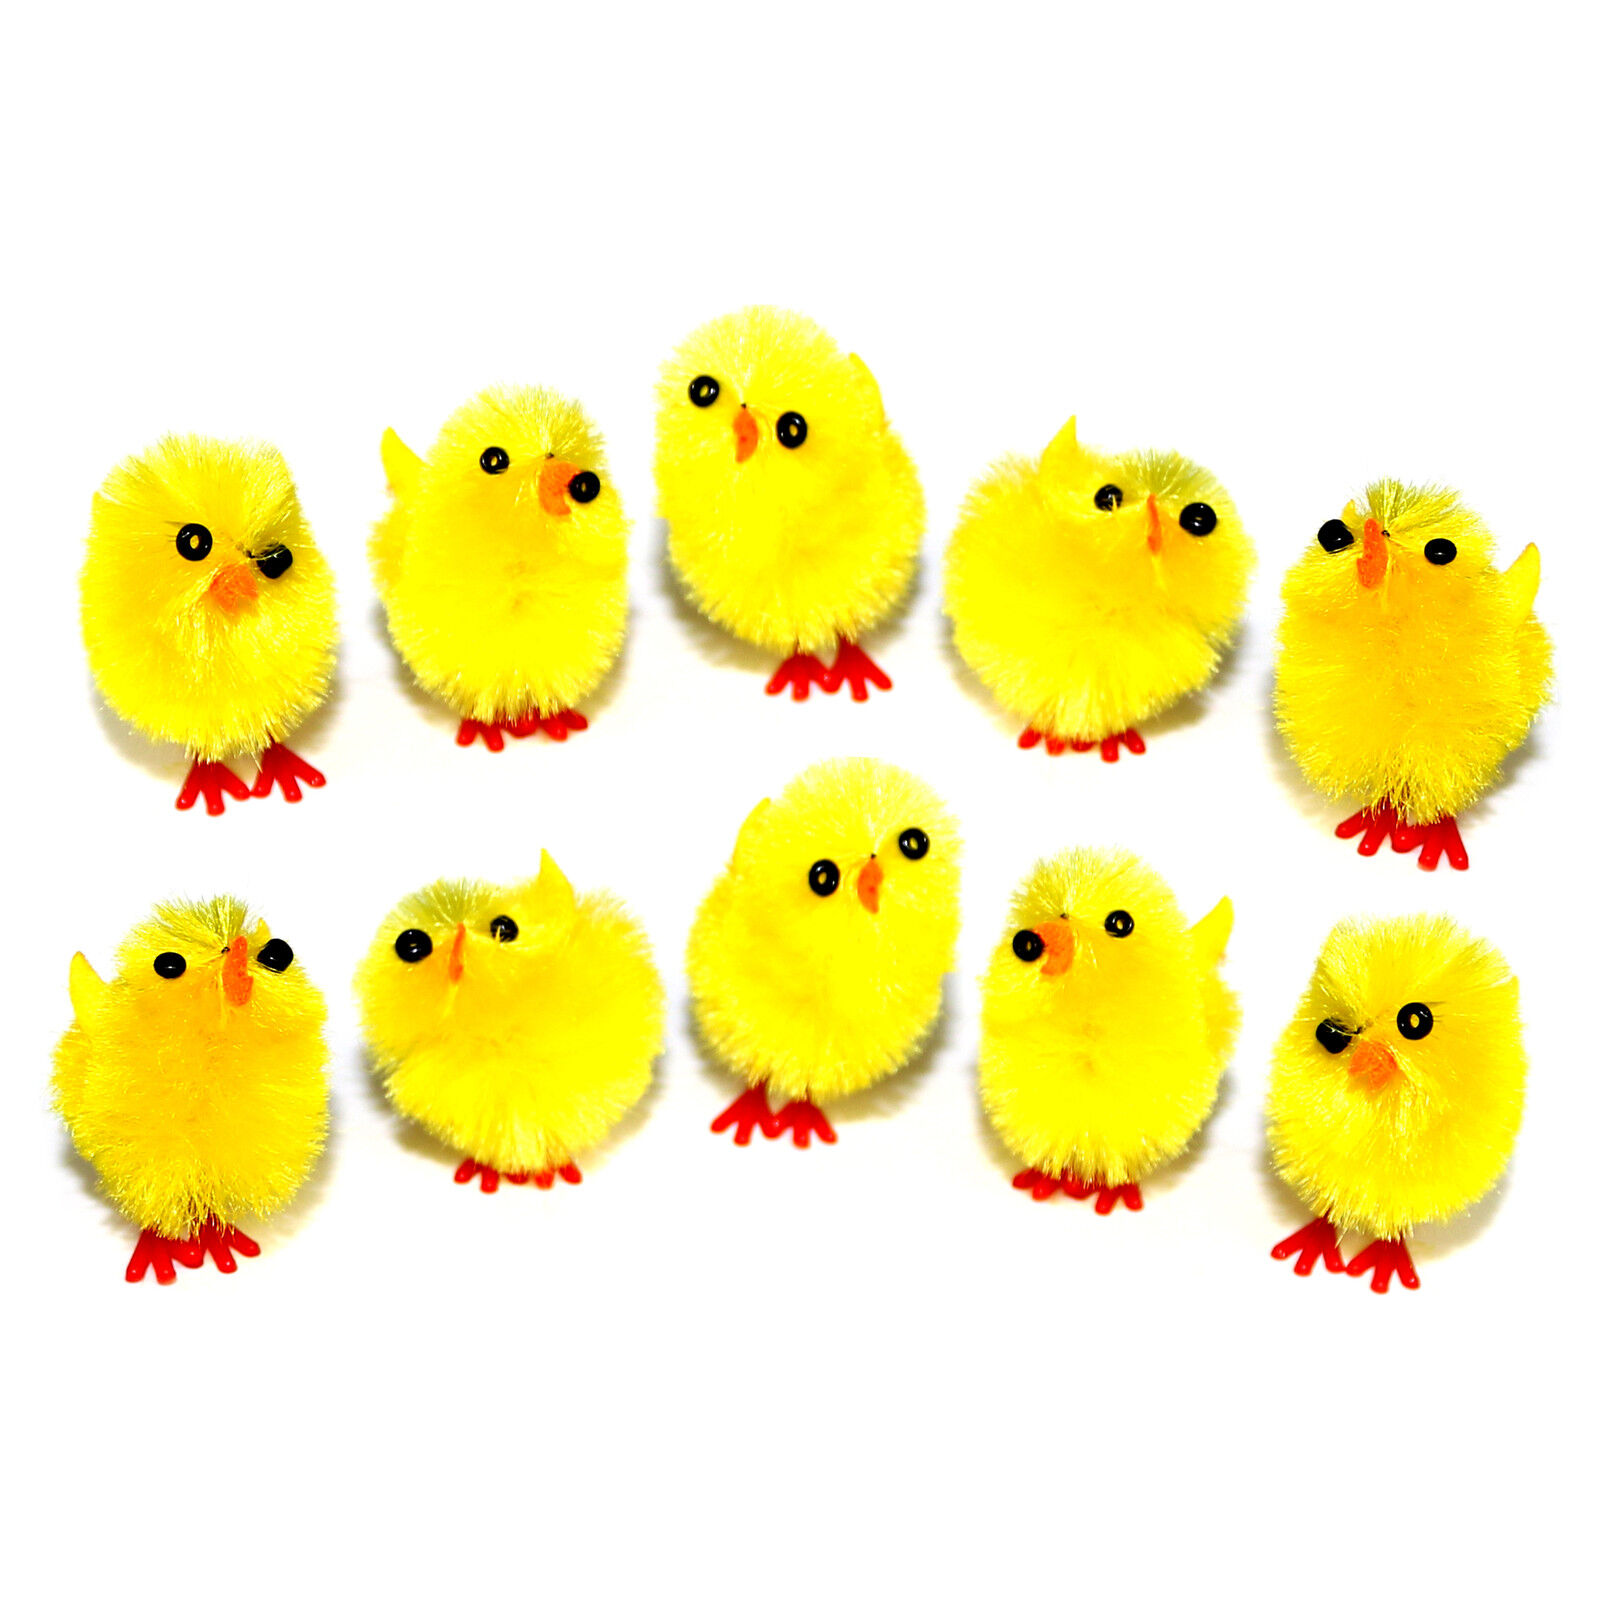 New 12 x Small Mini Yellow Fluffy Easter Chicks Cake Craft Decorating Hat Bonnet